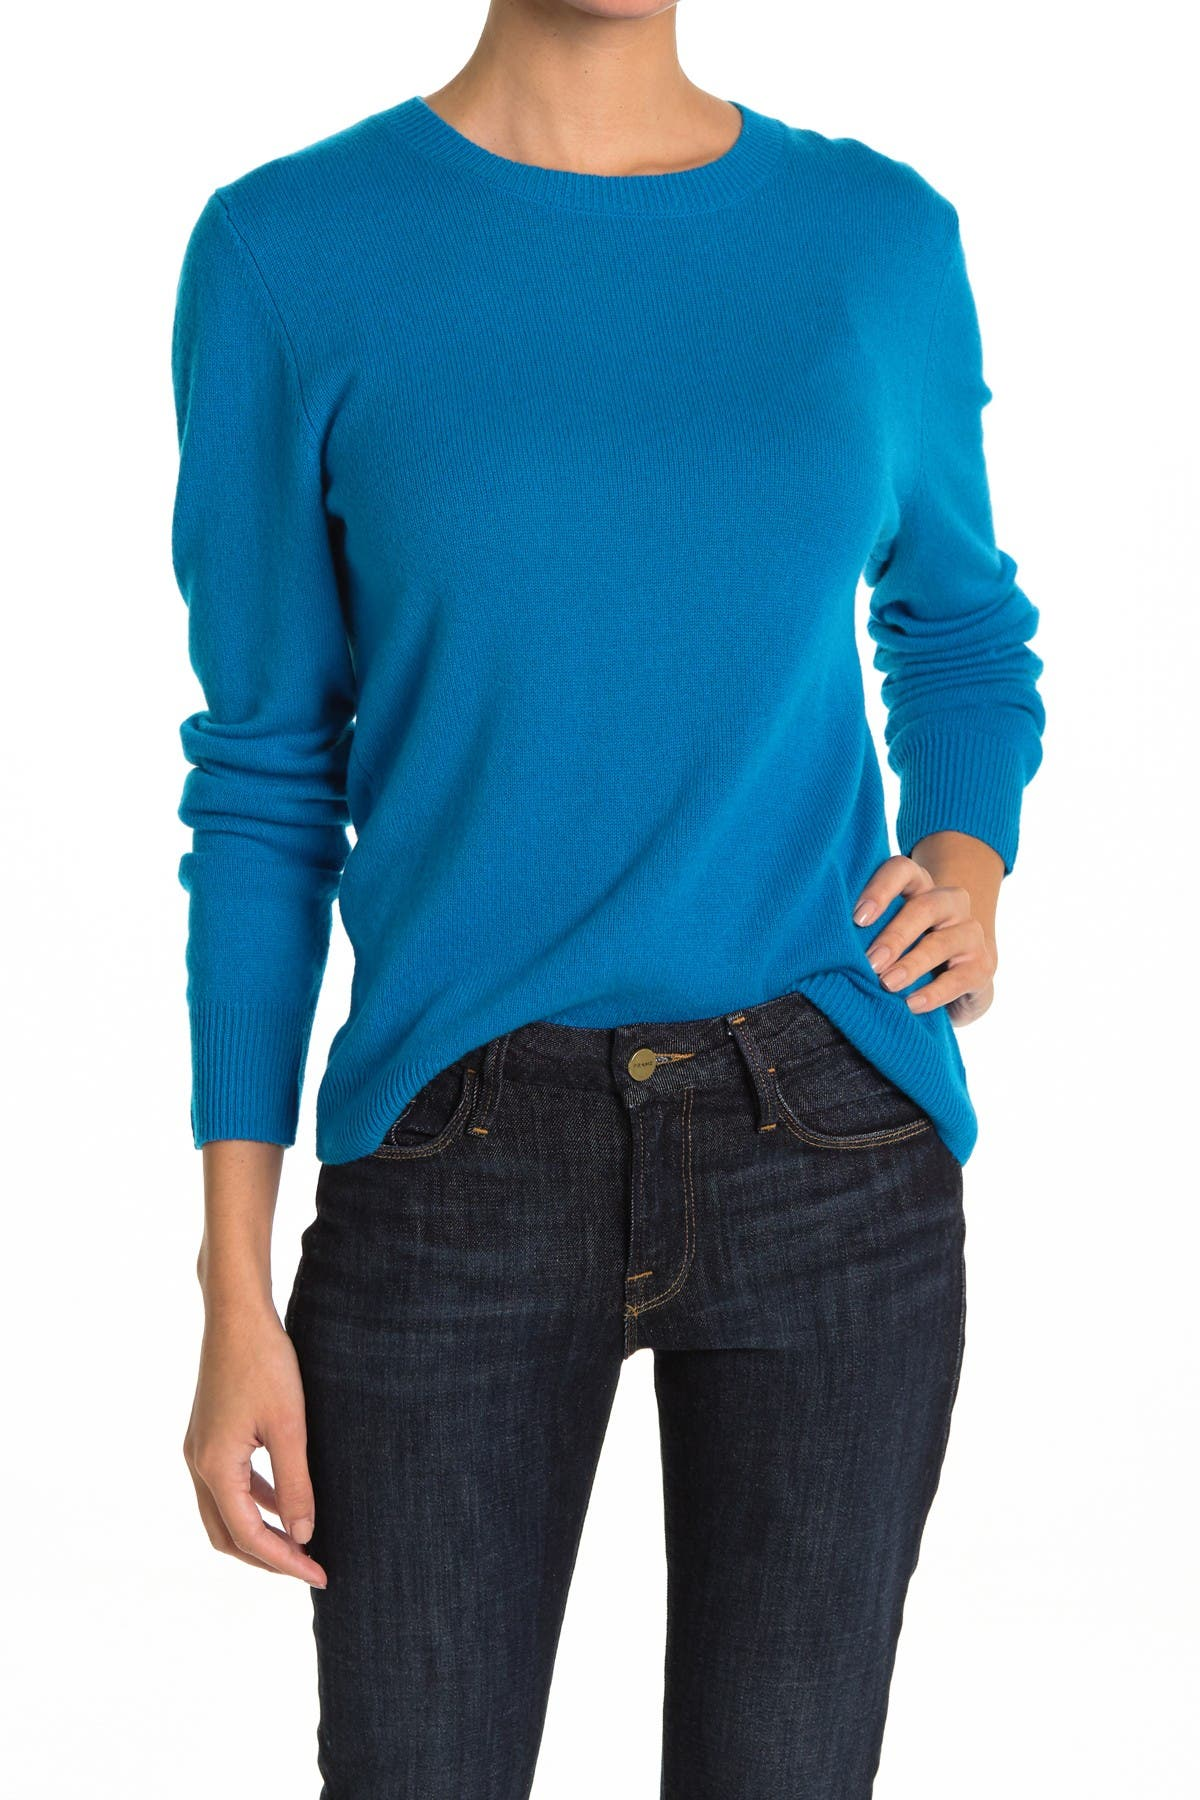 Image of 525 America Cashmere Crew Neck Pullover Sweater